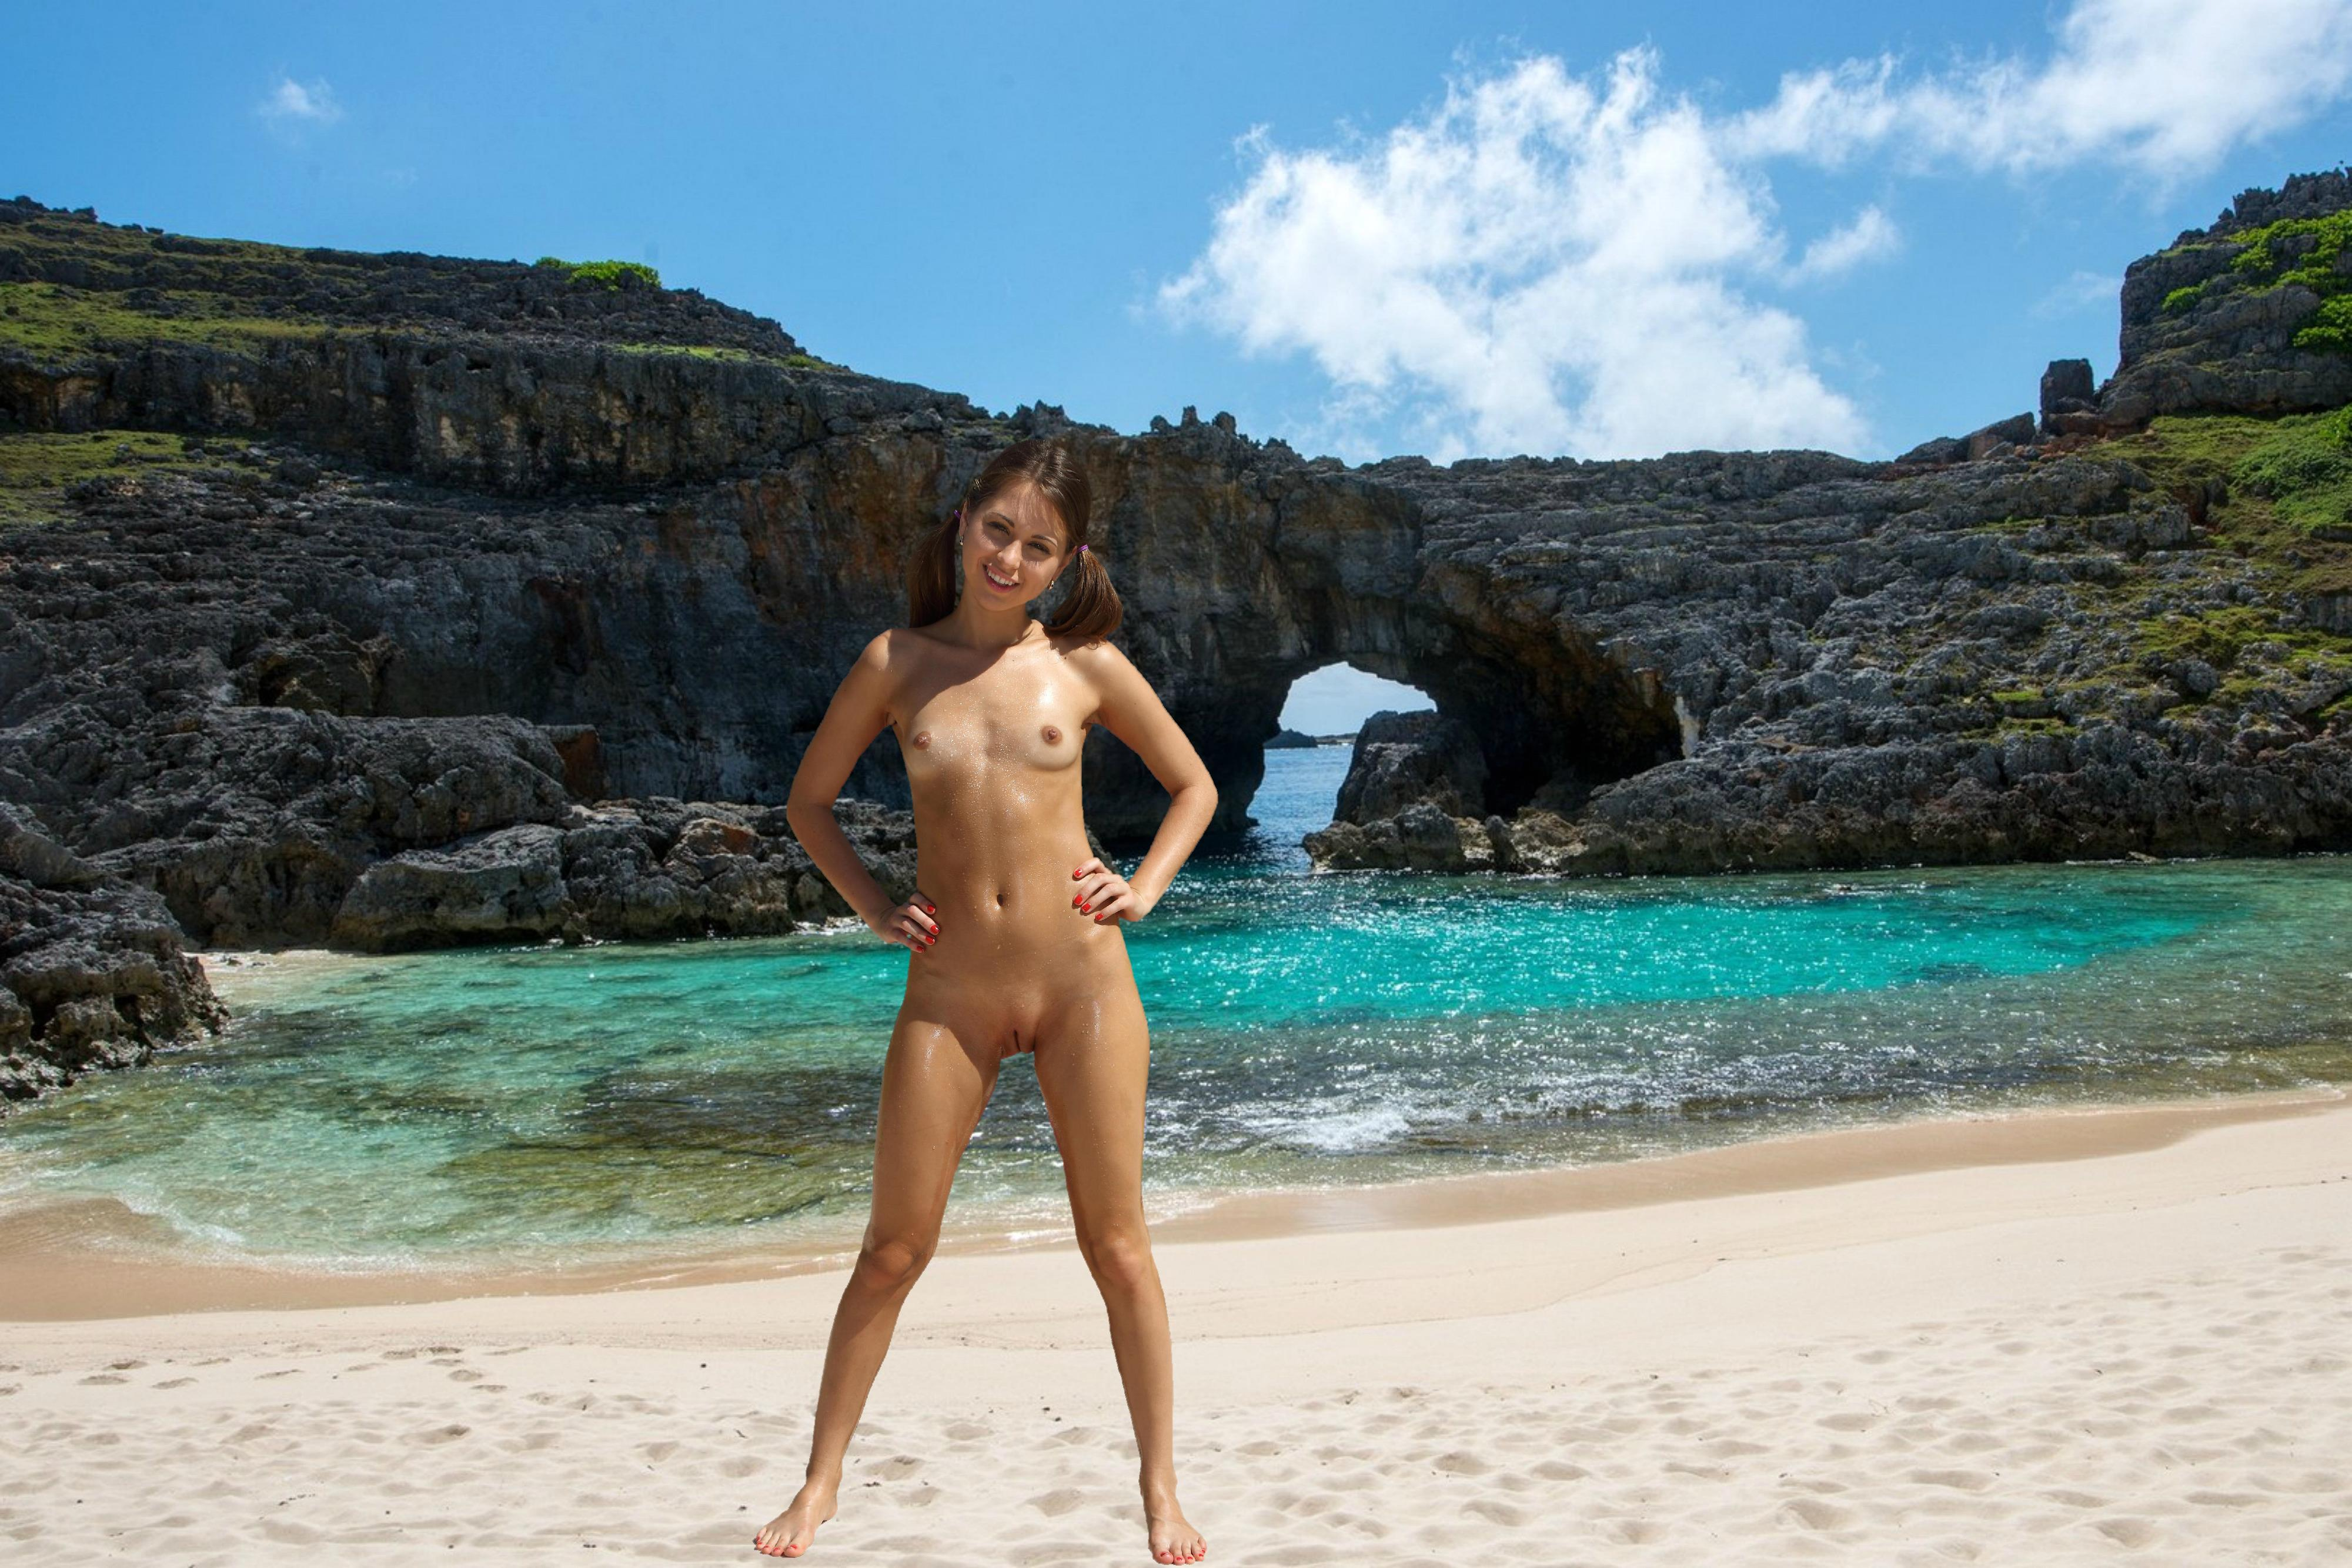 Download photo 4000x2667, riley reed, brunette, beach ...